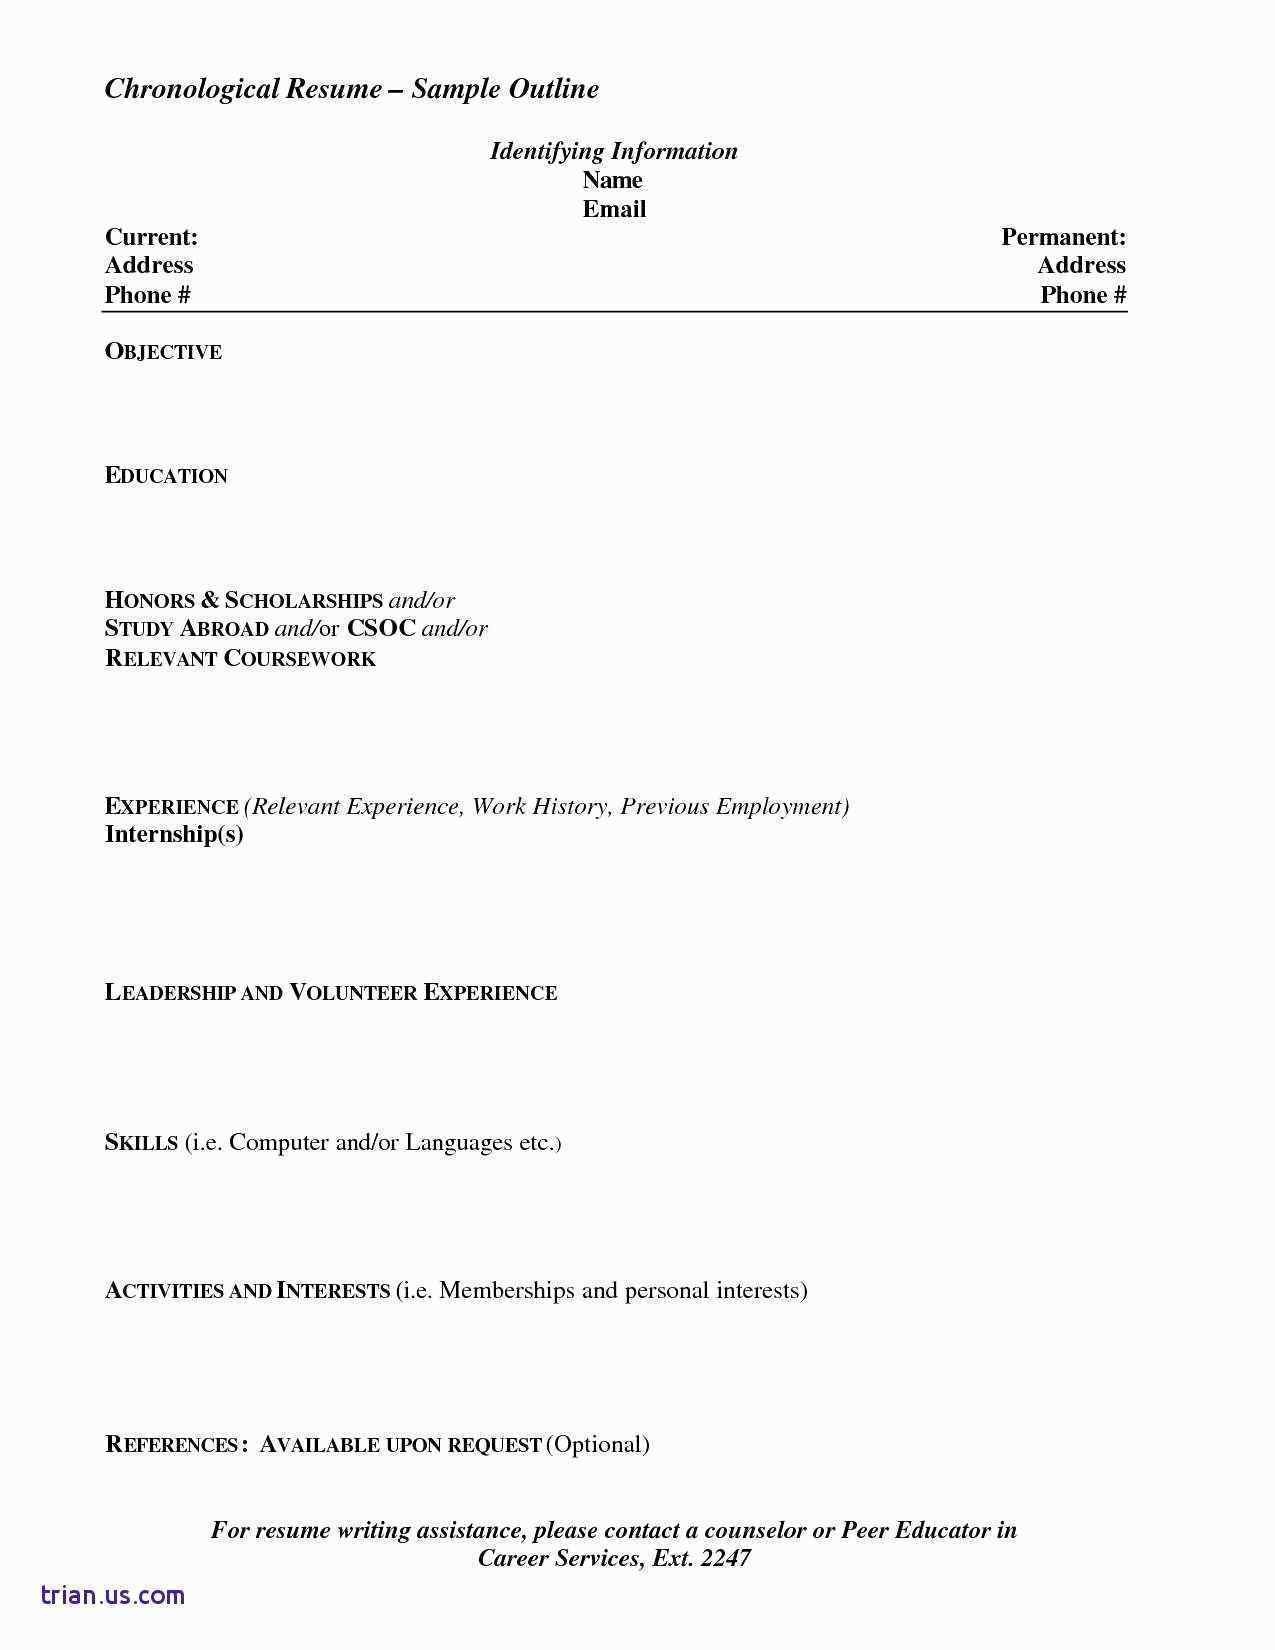 Entry Level Electrical Engineering Resume - Entry Level Electrical Engineering Cover Letter Unique 38 Beautiful